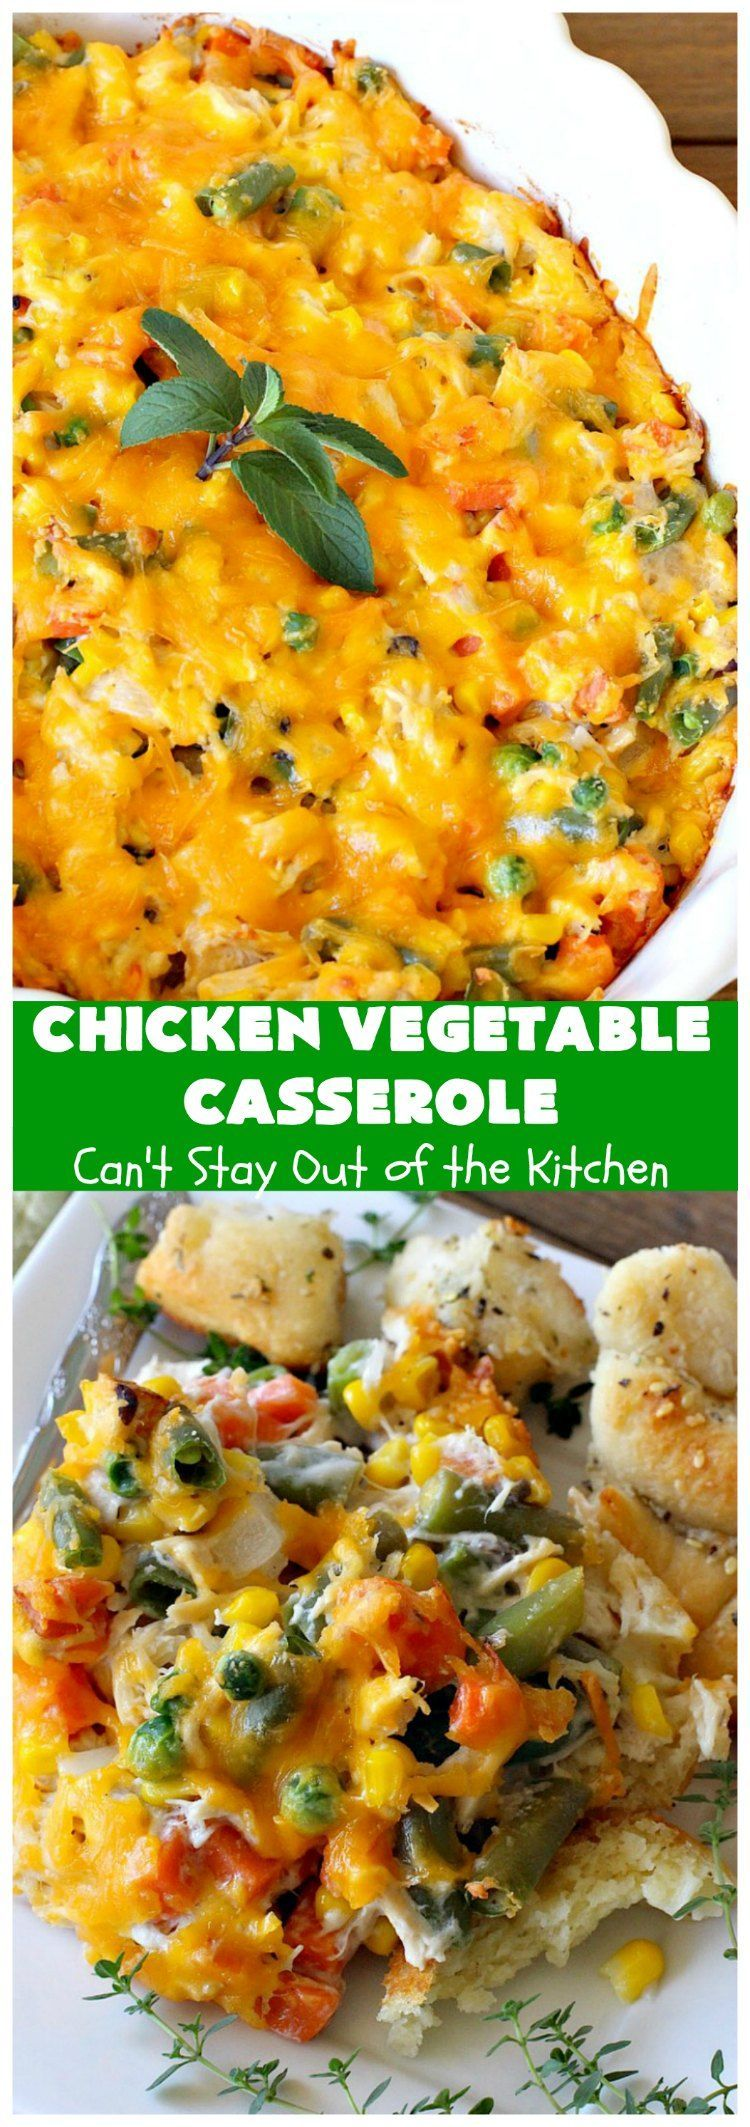 Chicken Vegetable Casserole Can T Stay Out Of The Kitchen Chicken And Vegetable Casserole Vegetable Casserole Recipes Chicken And Vegetables